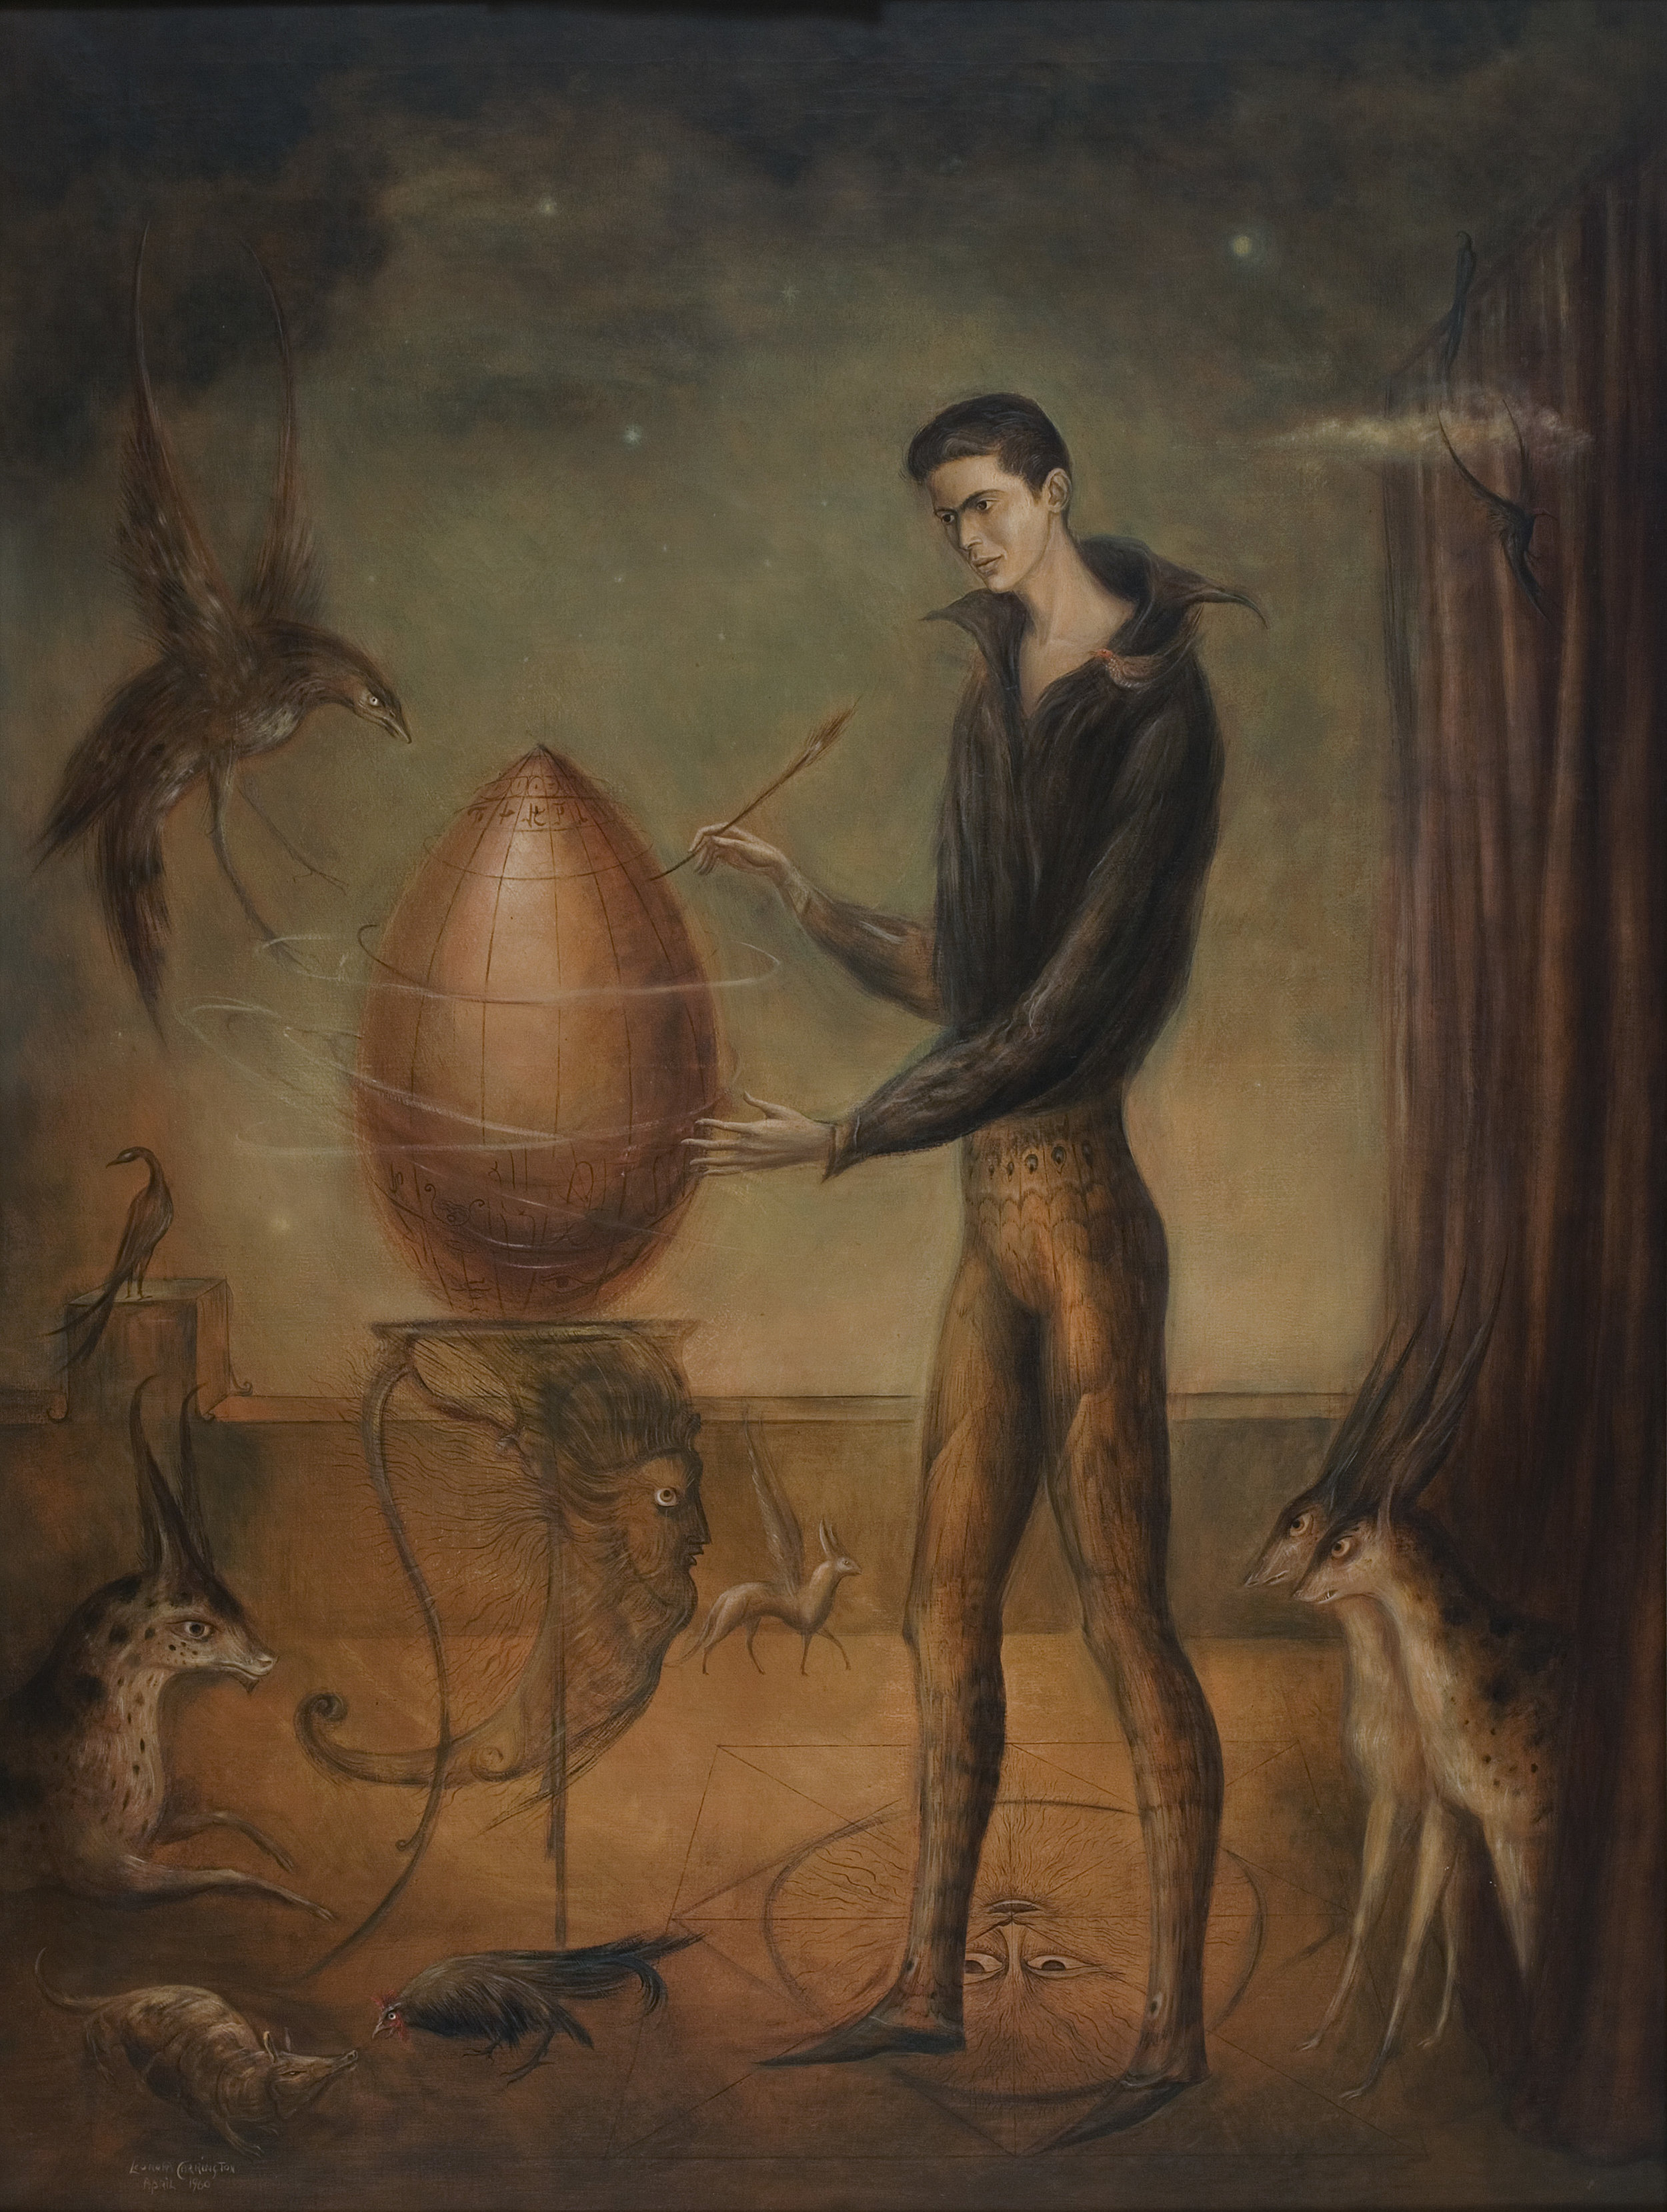 "LEONORA CARRINGTON, QUERÍA SER PÁJARO, 1960, OIL ON CANVAS, 47″ X 35 1/2″. SIGNED AND DATED L.L. ""LEONORA CARRINGTON APRIL 1960""; VERSO SIGNED ""ENRIQUE ALVAREZ FELIX/ 1960/ LEONORA CARRINGTON."" © ESTATE OF LEONORA CARRINGTON / ARTISTS RIGHTS SOCIETY (ARS), NEW YORK. COURTESY OF GALLERY WENDI NORRIS."